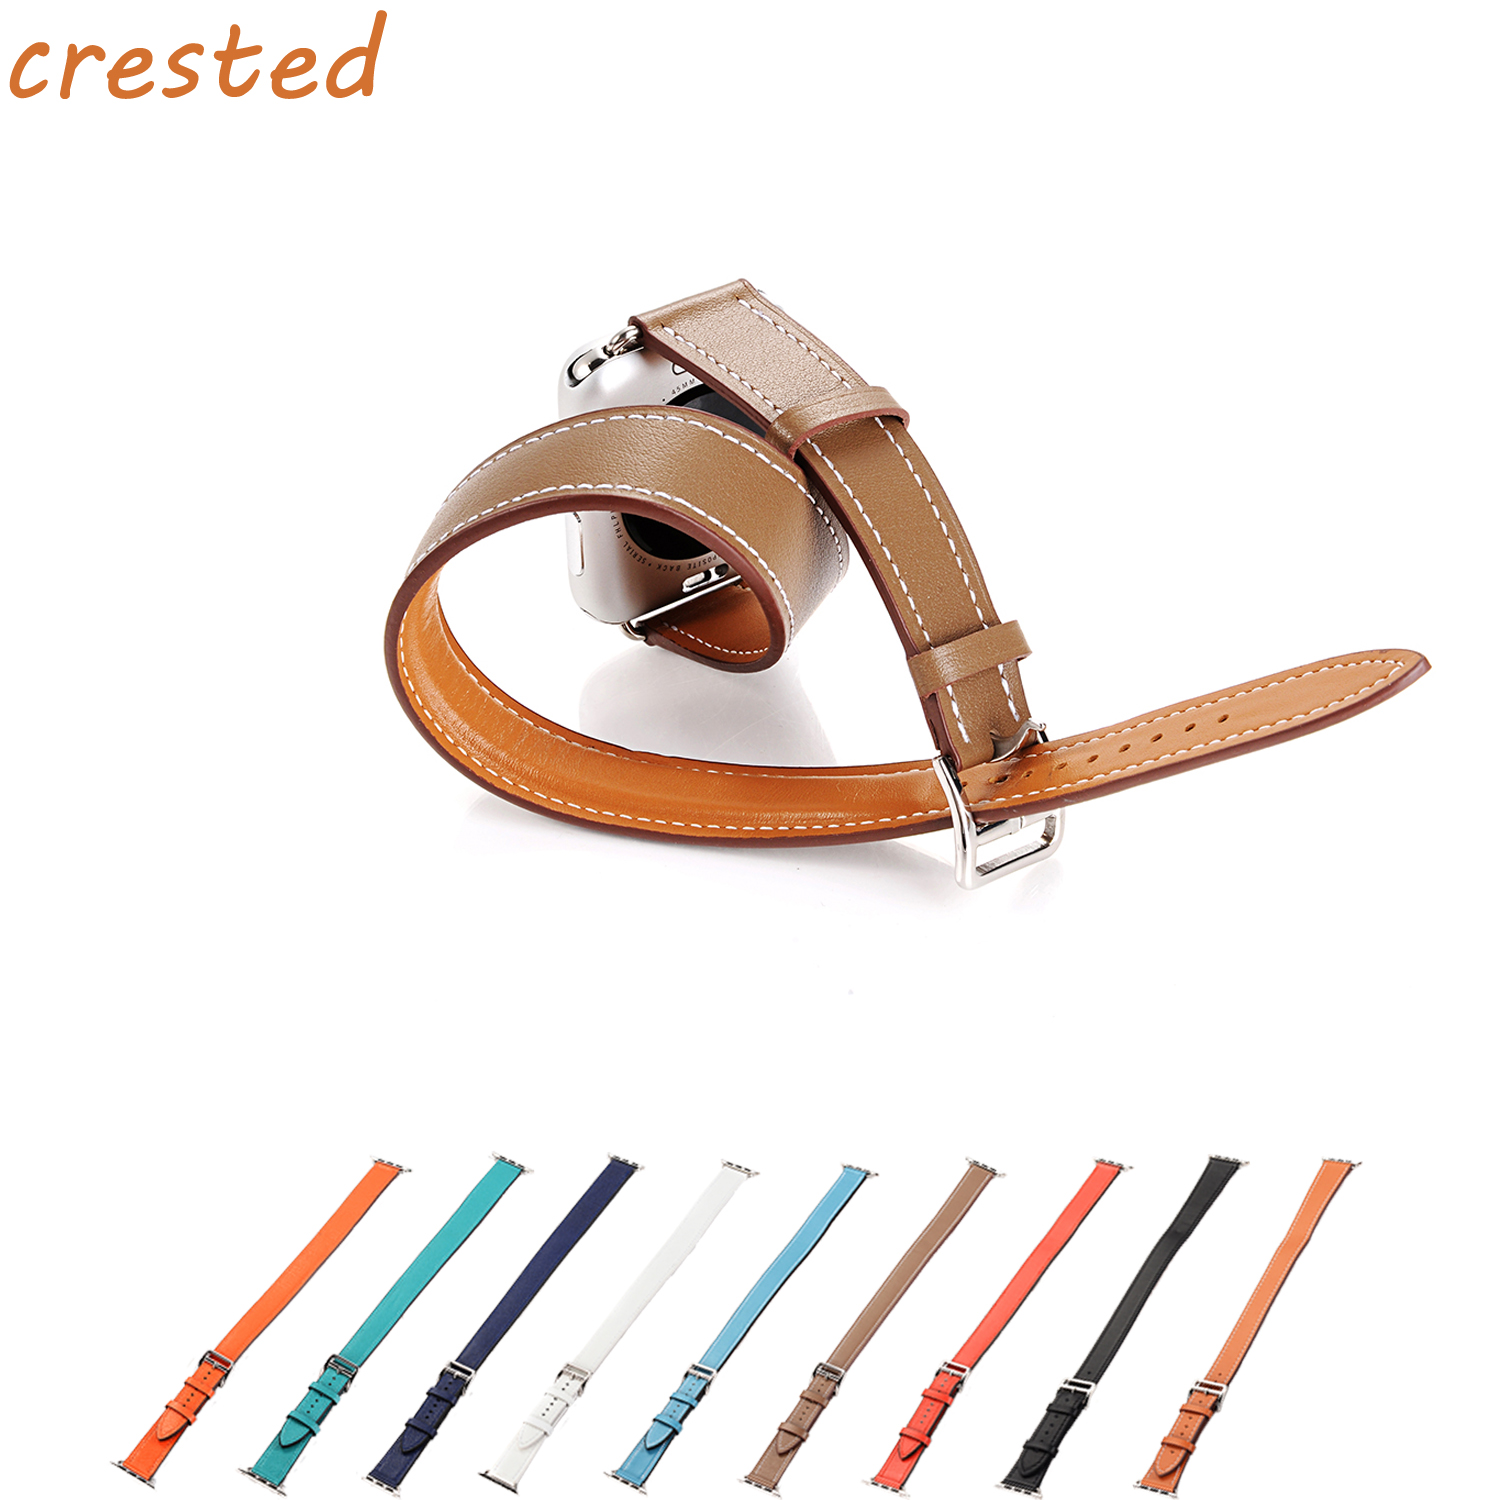 CRESTED Genuine leather band for apple watch 3 42mm/38mm iwatch serise3/2/1 Double tour Lit Leather wrist band bracelet strap crested nylon band strap for apple watch band 3 42mm 38mm survival rope wrist bracelet watch strap for apple iwatch 3 2 1 black